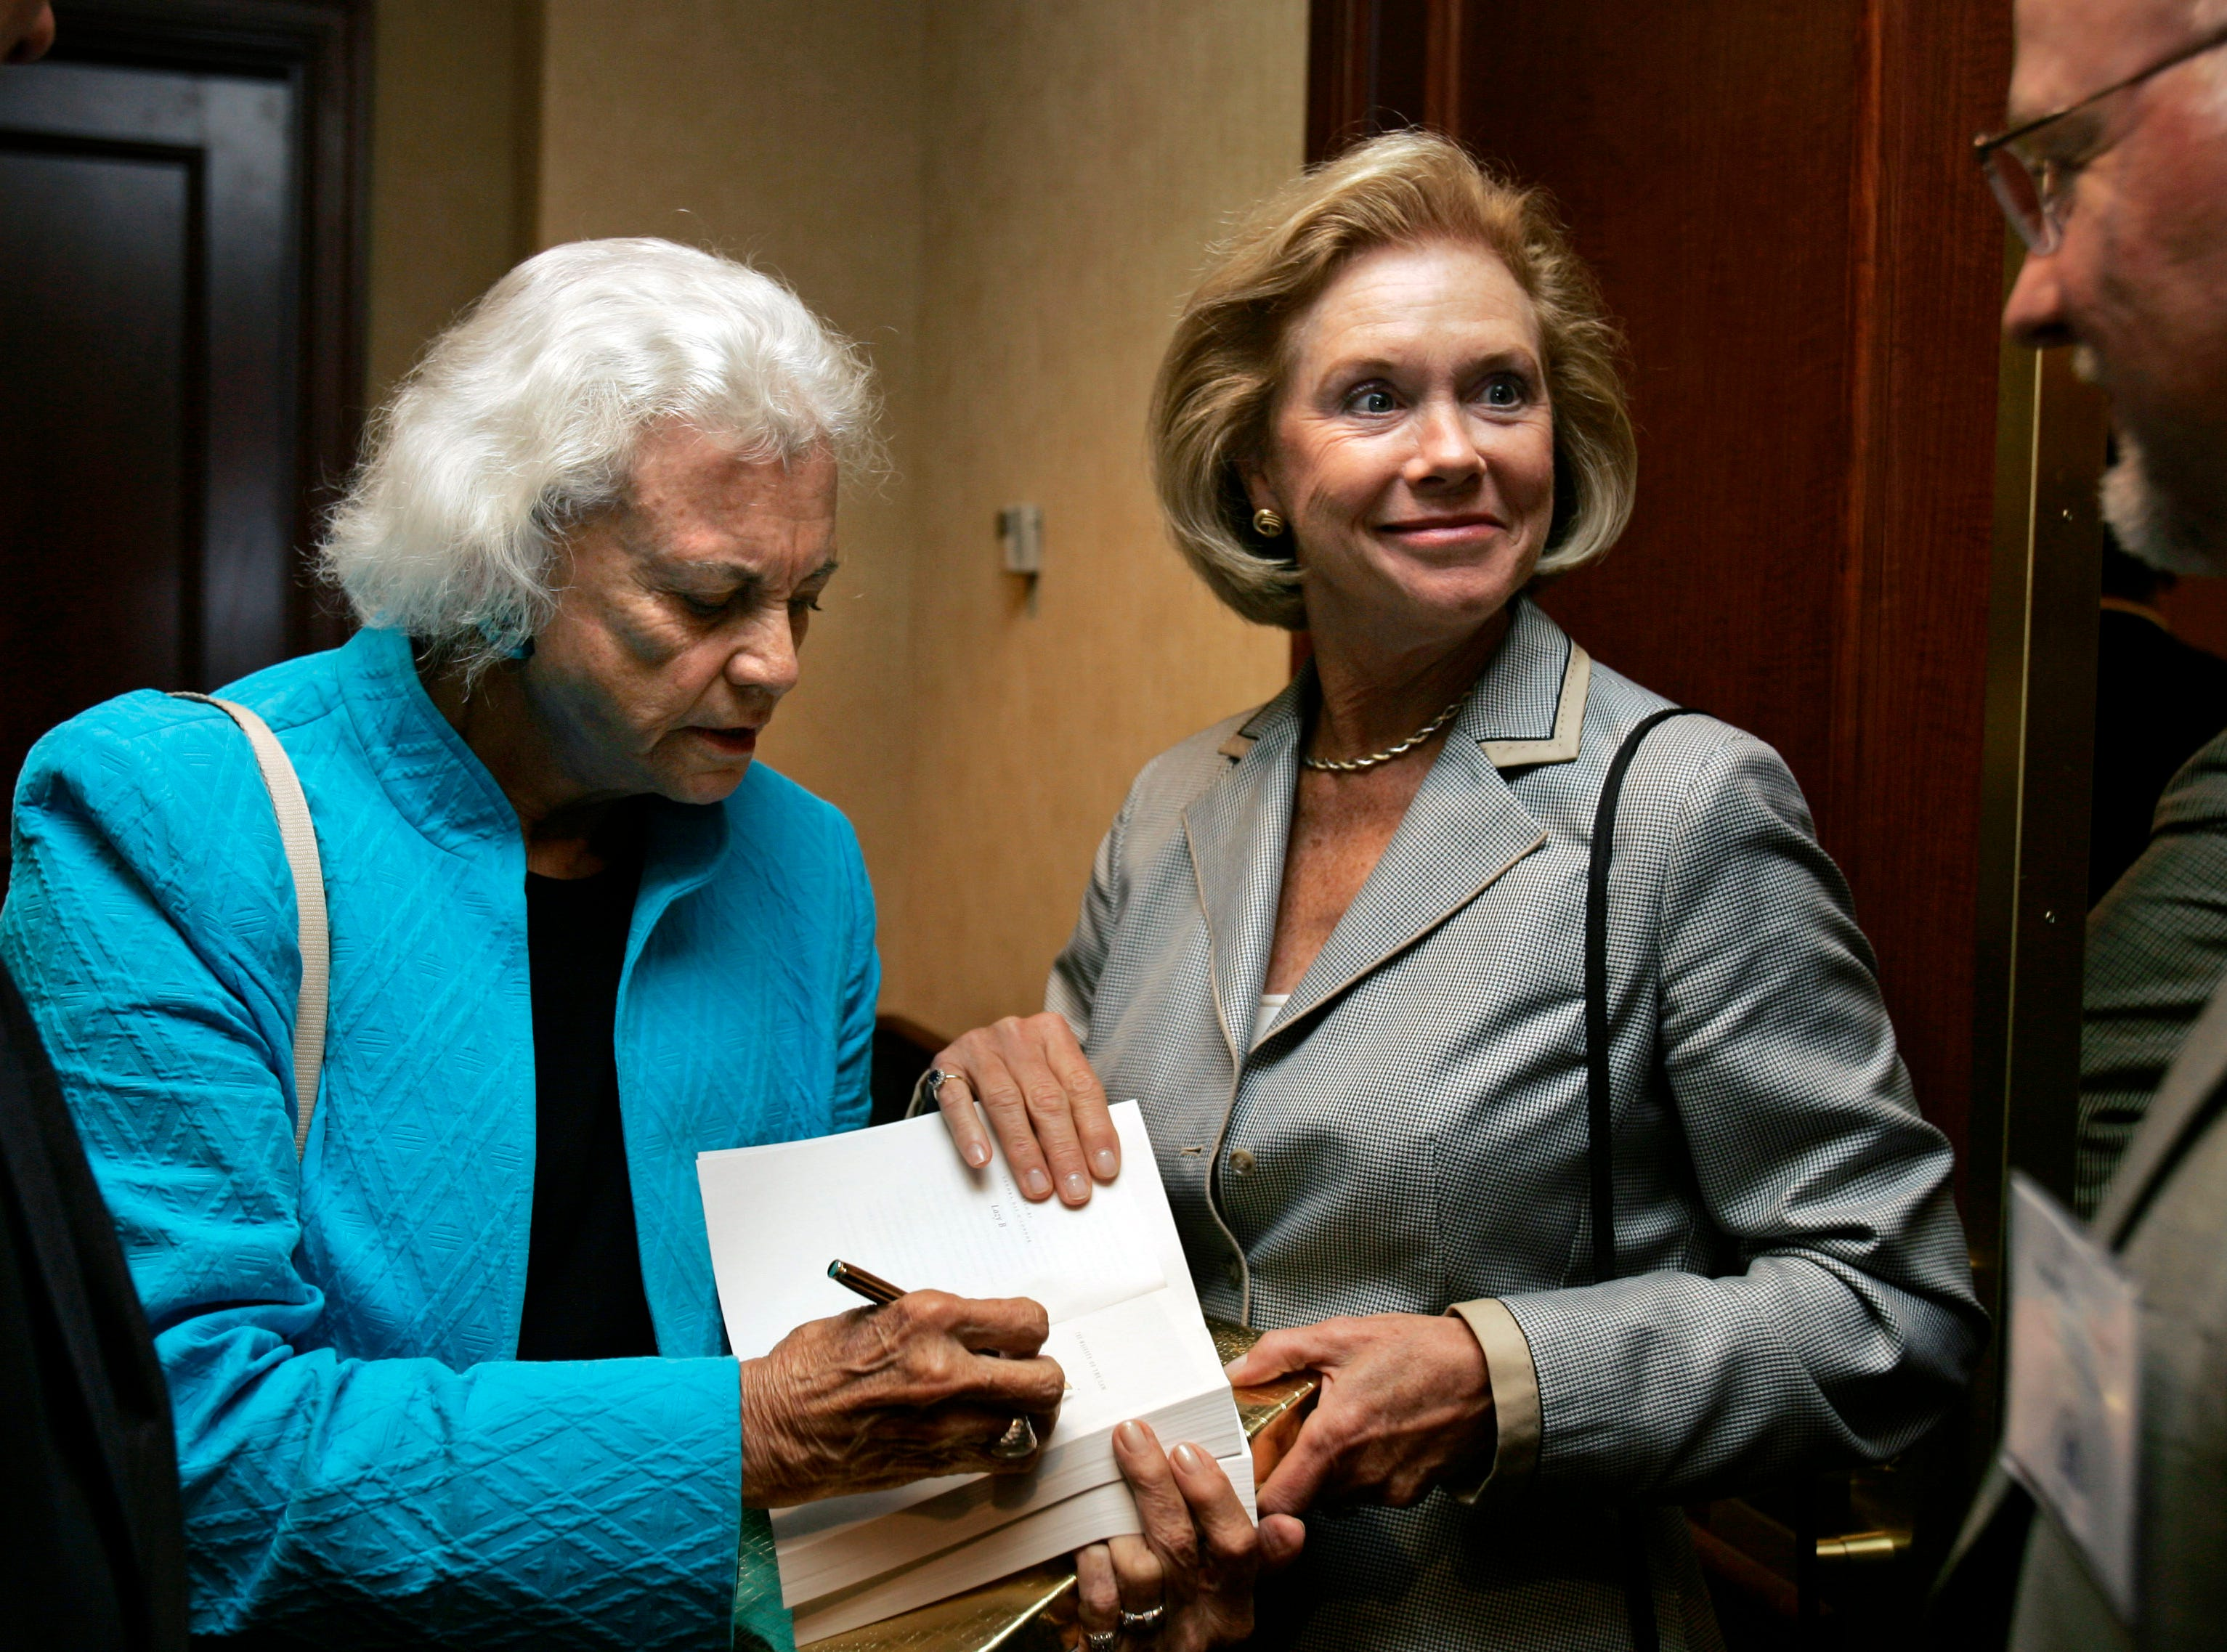 U.S. Circuit Judge Marjorie O. Rendell, second from left, holds a book to be autographed for retired U.S. Supreme Court Justice Sandra Day O'Connor after a meeting of Pennsylvania judges and lawyers in Harrisburg, Pa., Wednesday, Sept., 19, 2007.